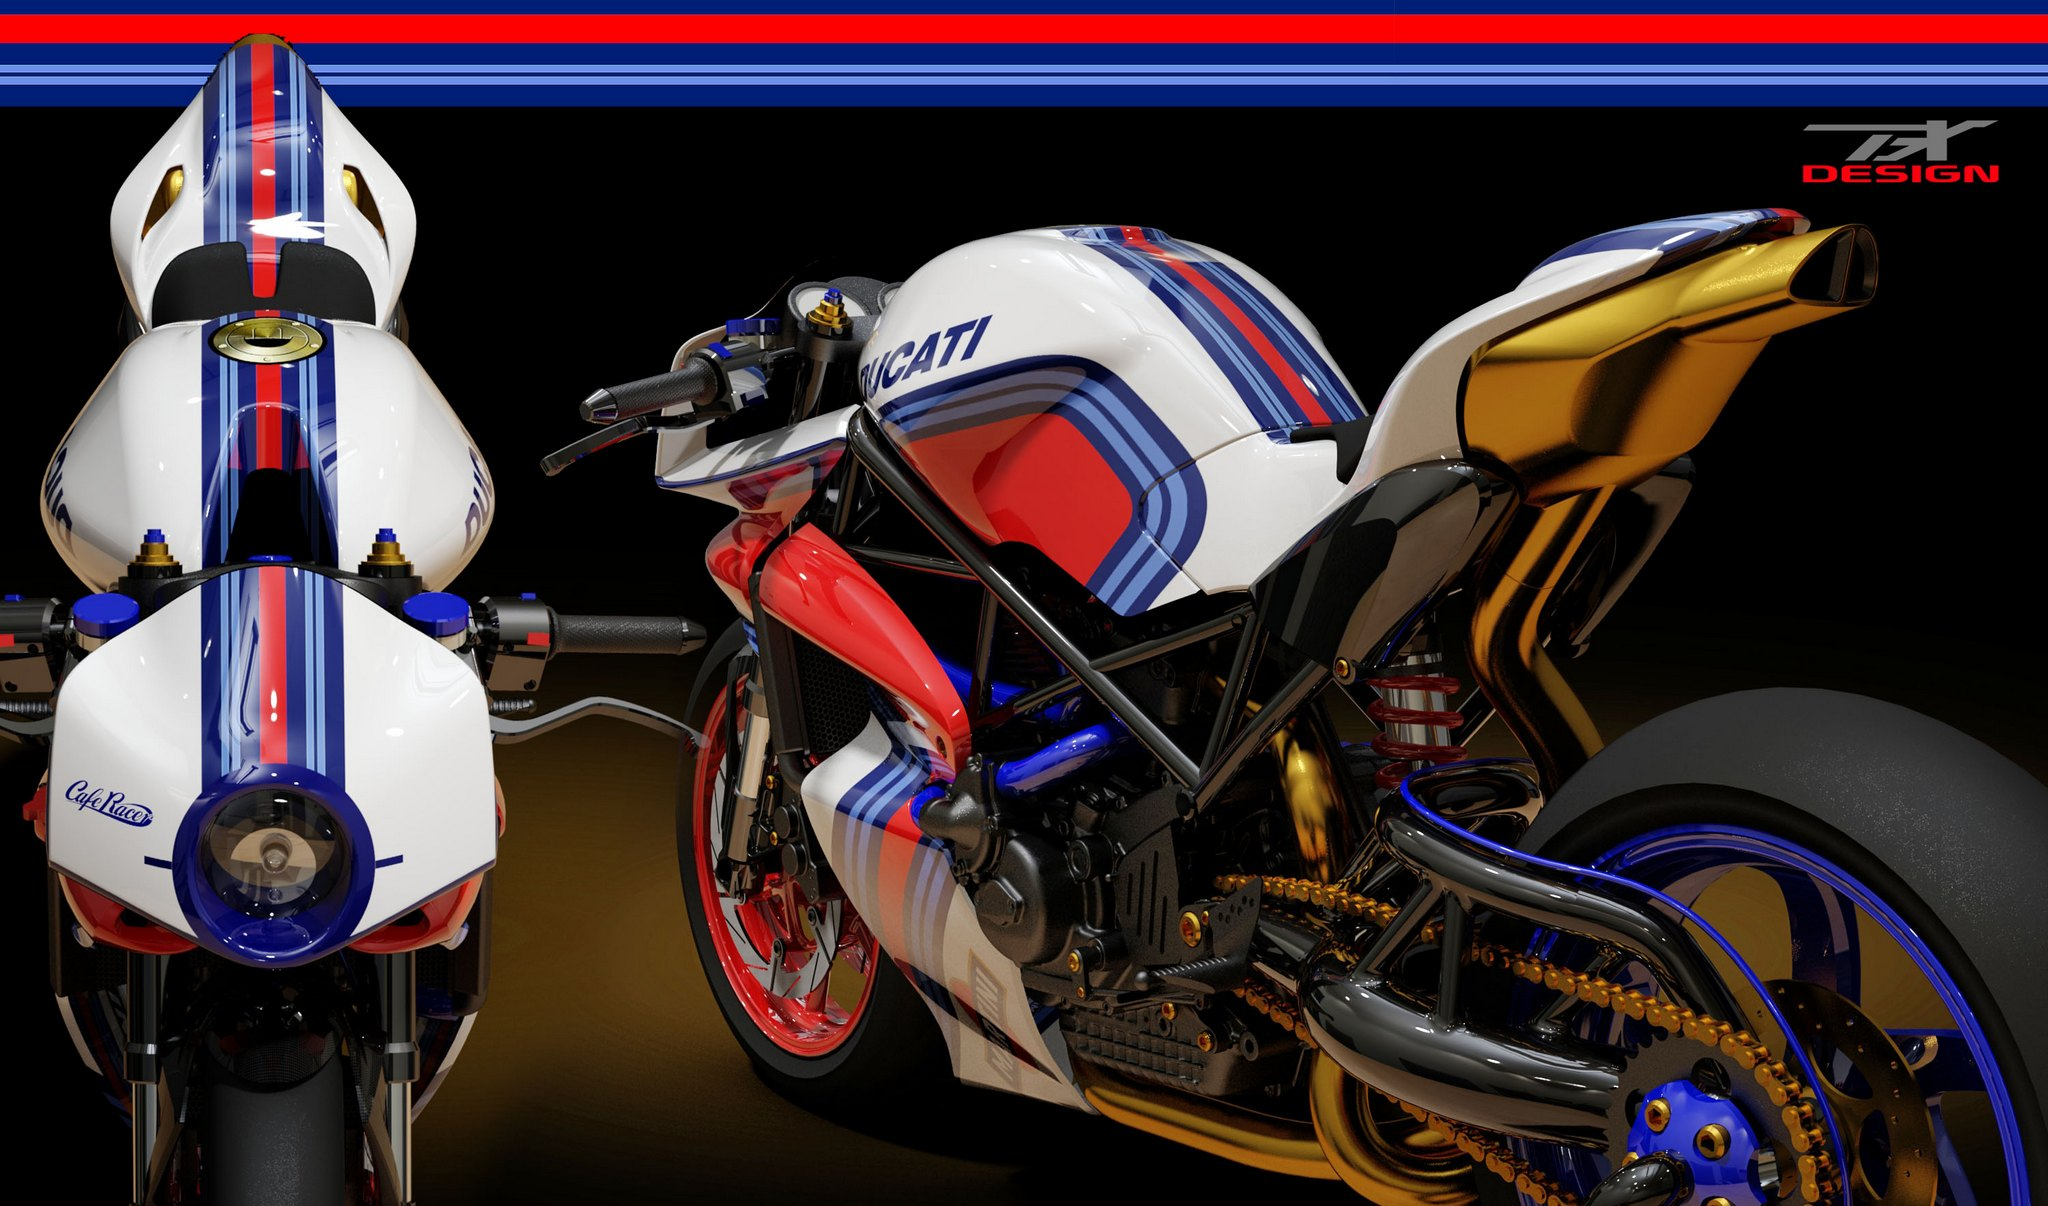 garage bike shop ideas - Ducati Monster Cafe Racer to Die For Rendered by Paolo